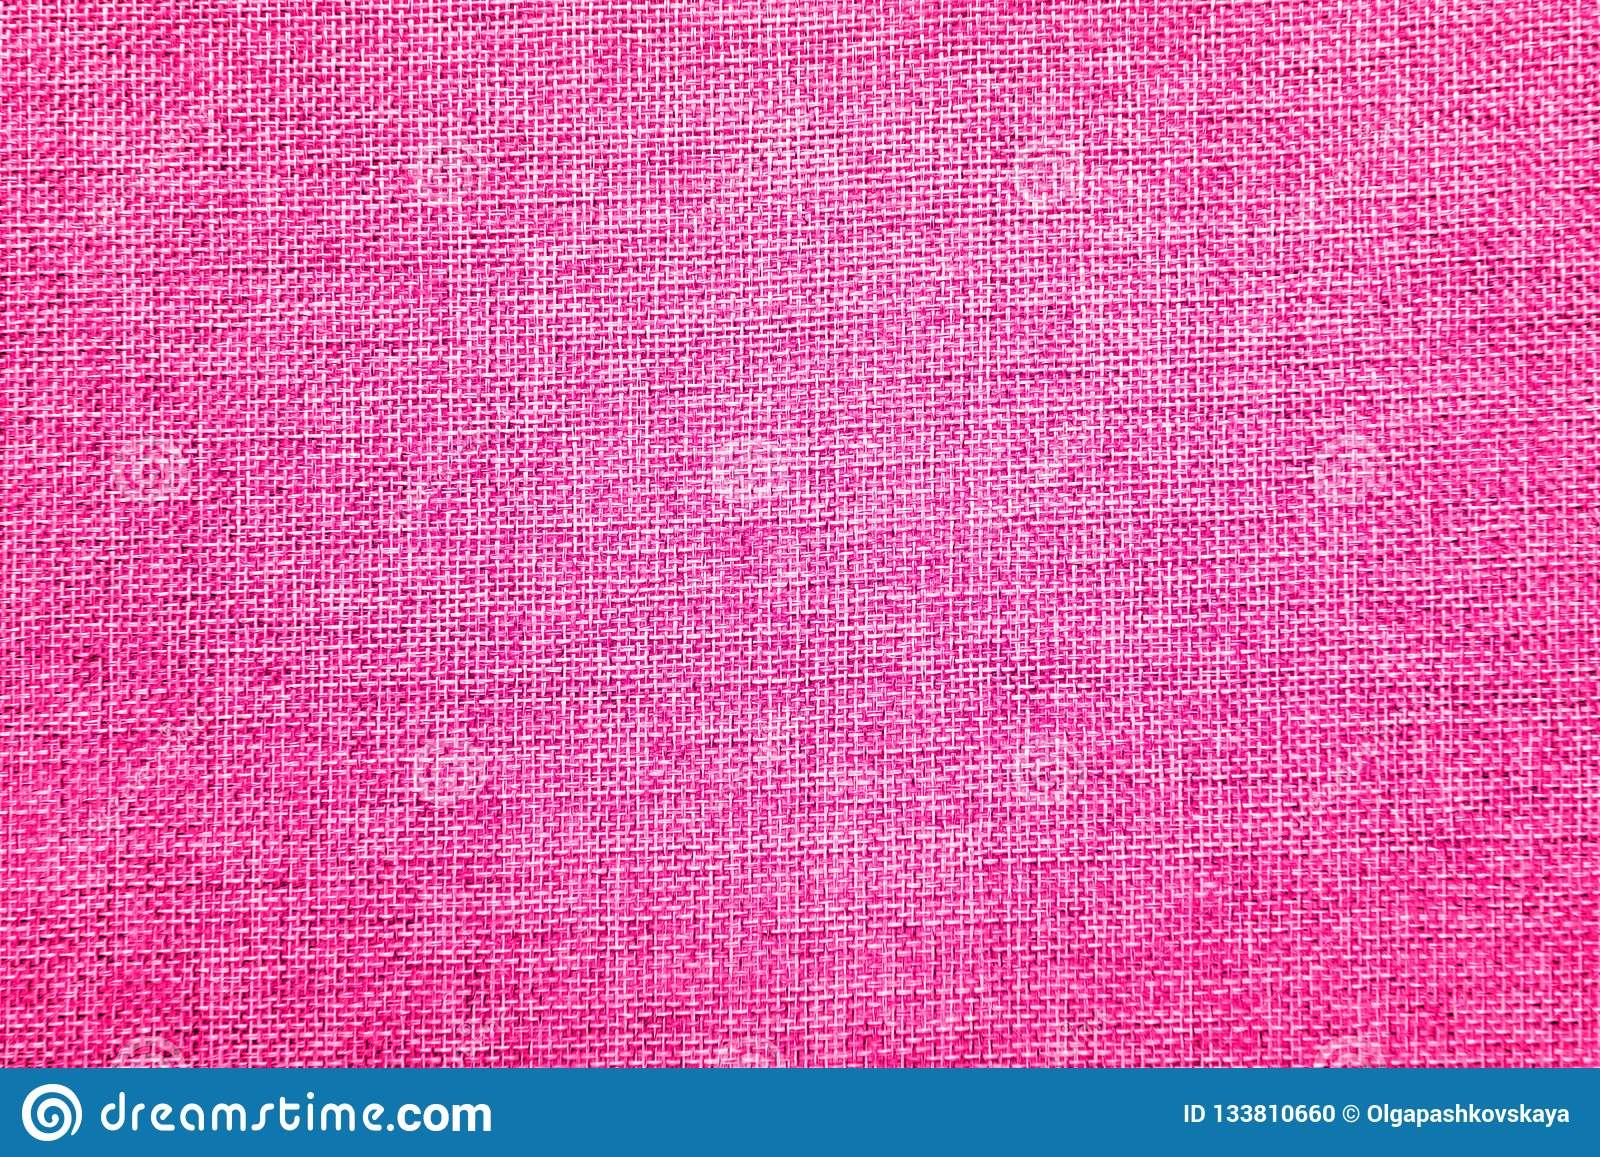 Burlap background colored in pink and white blend